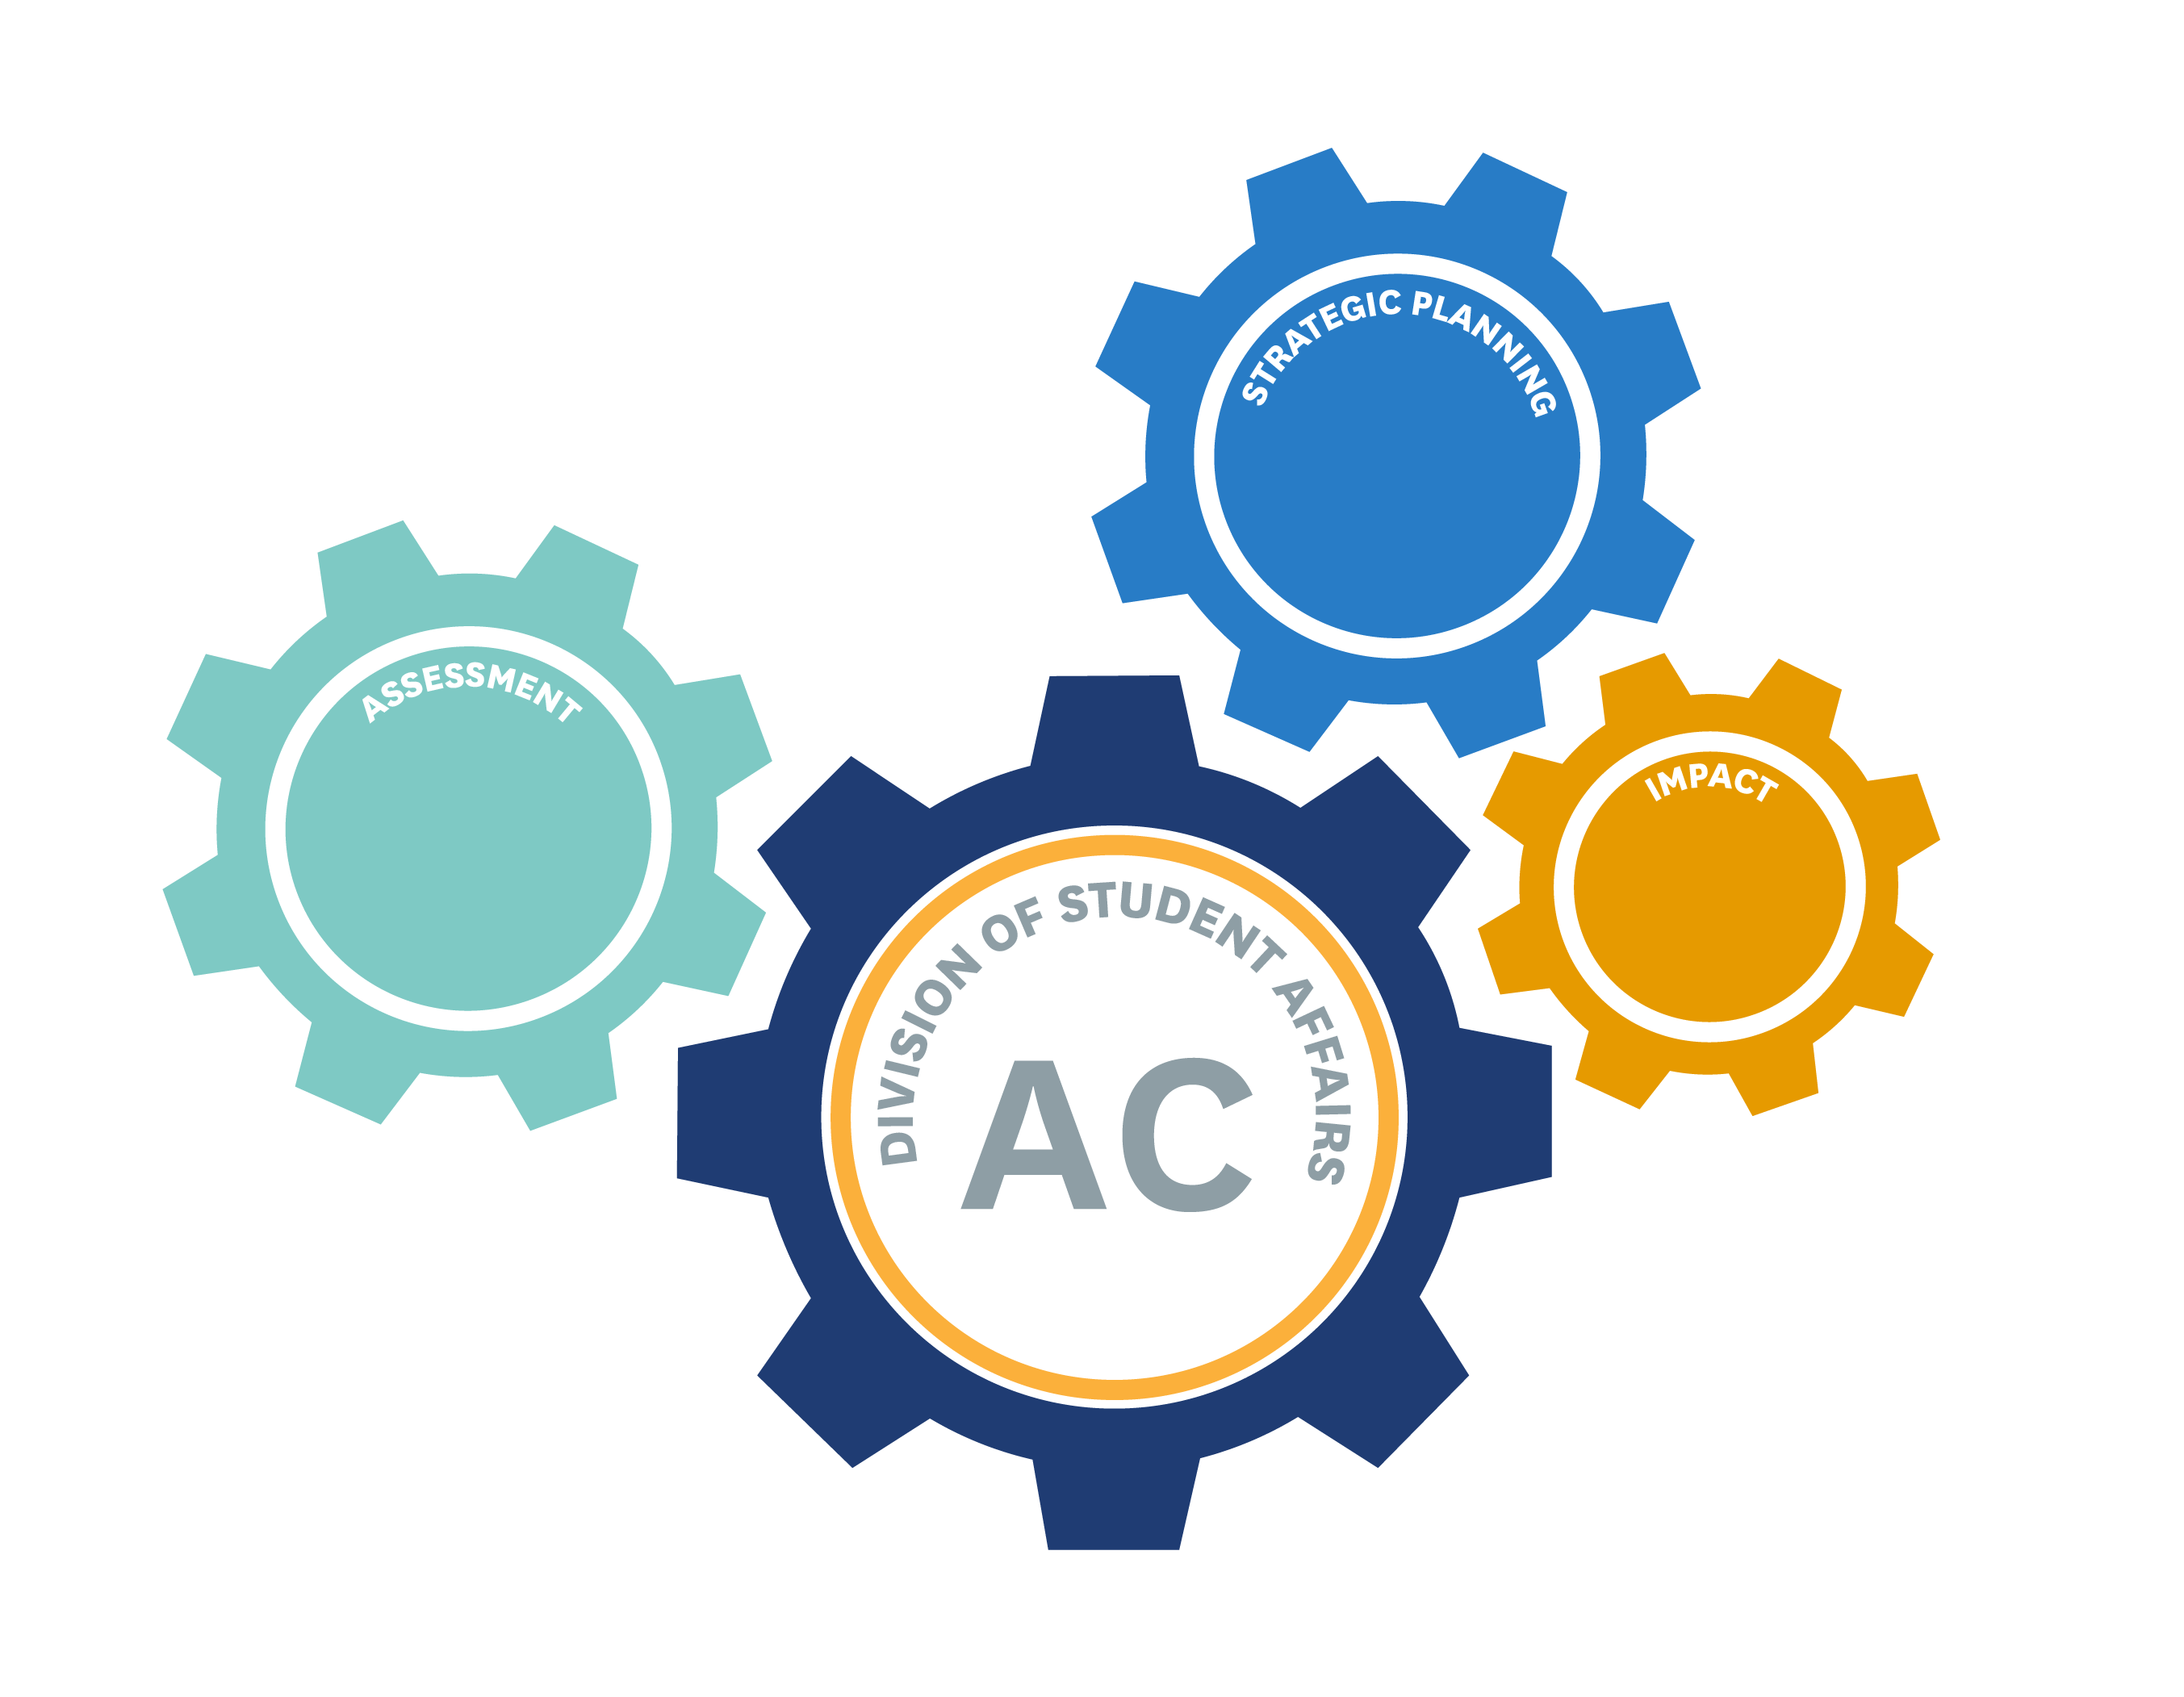 Assessment Council, Assessment, Strategic Planning and Impact Graphic